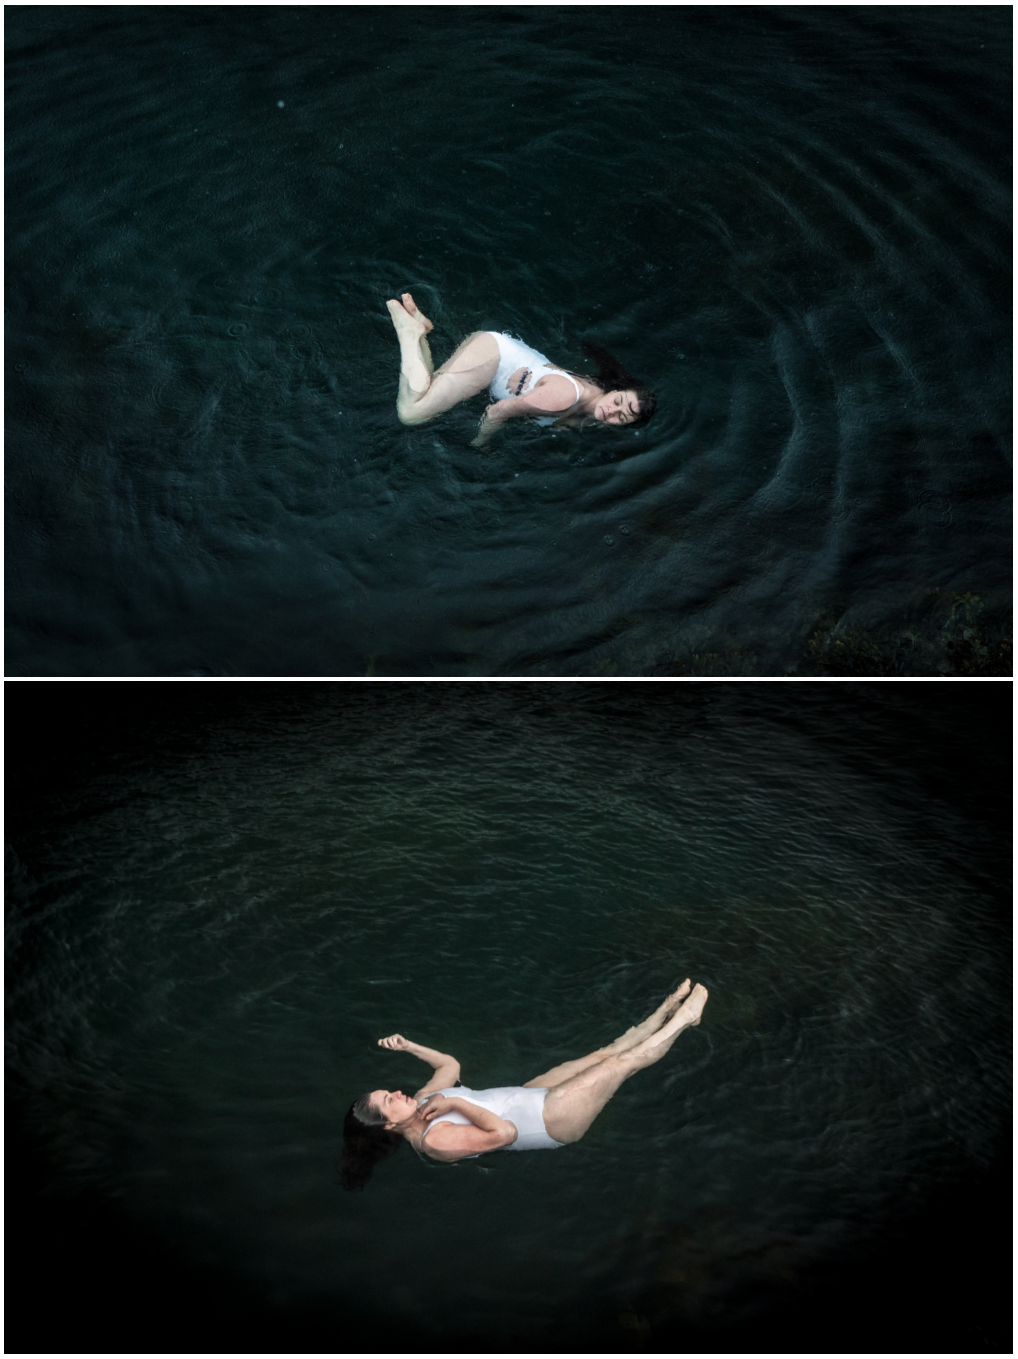 Bodies of Water Images